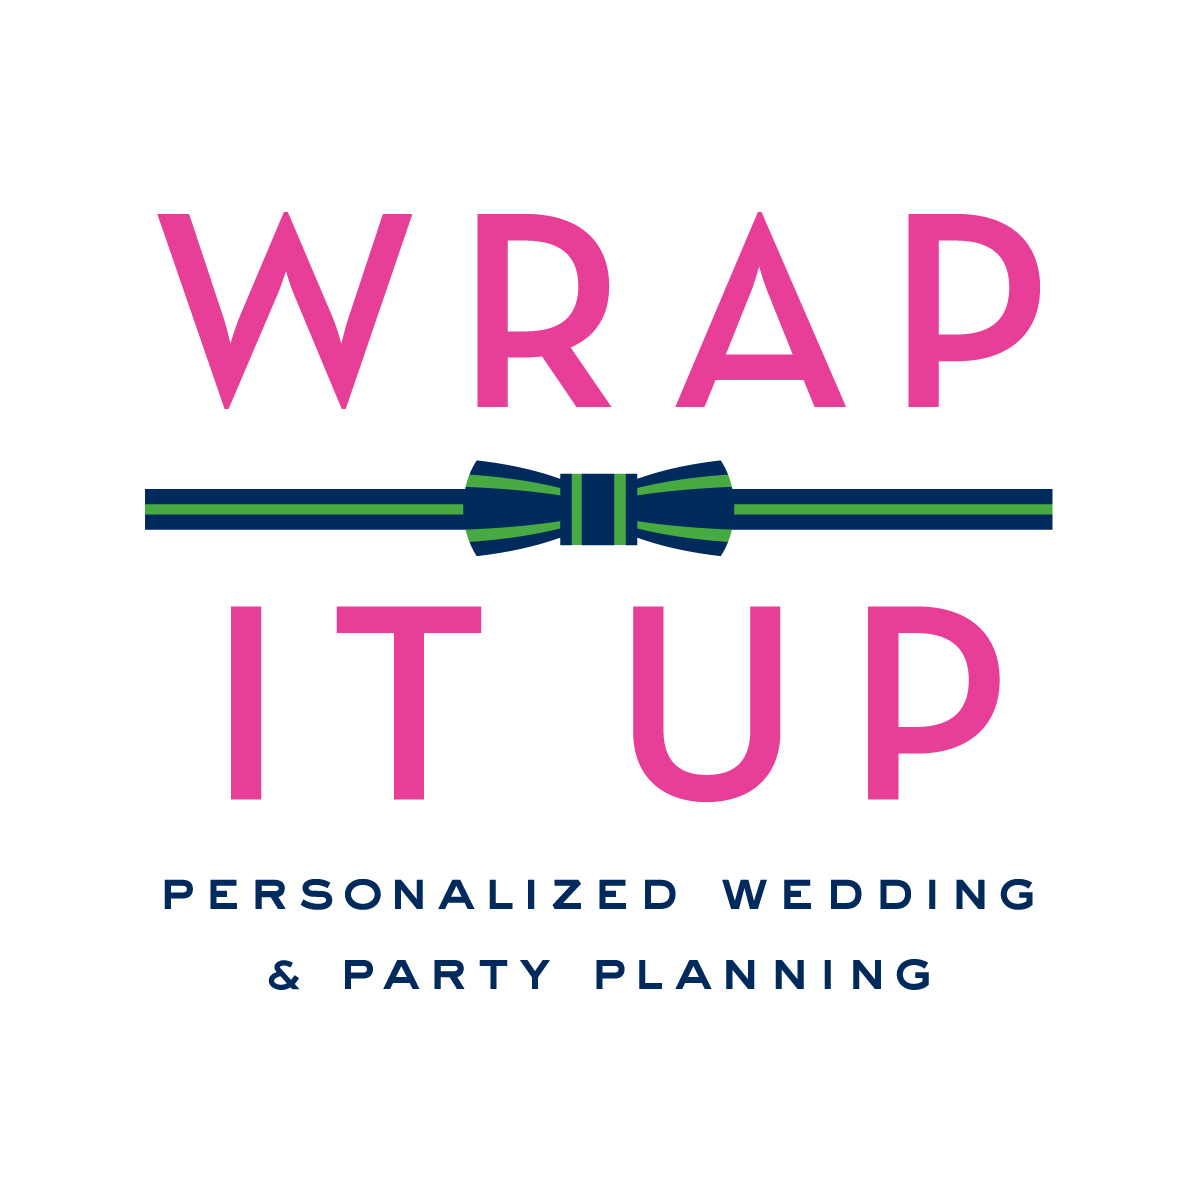 Wrap It Up- Rustic Glam Wedding at Bridgeport - Wrap It Up Parties